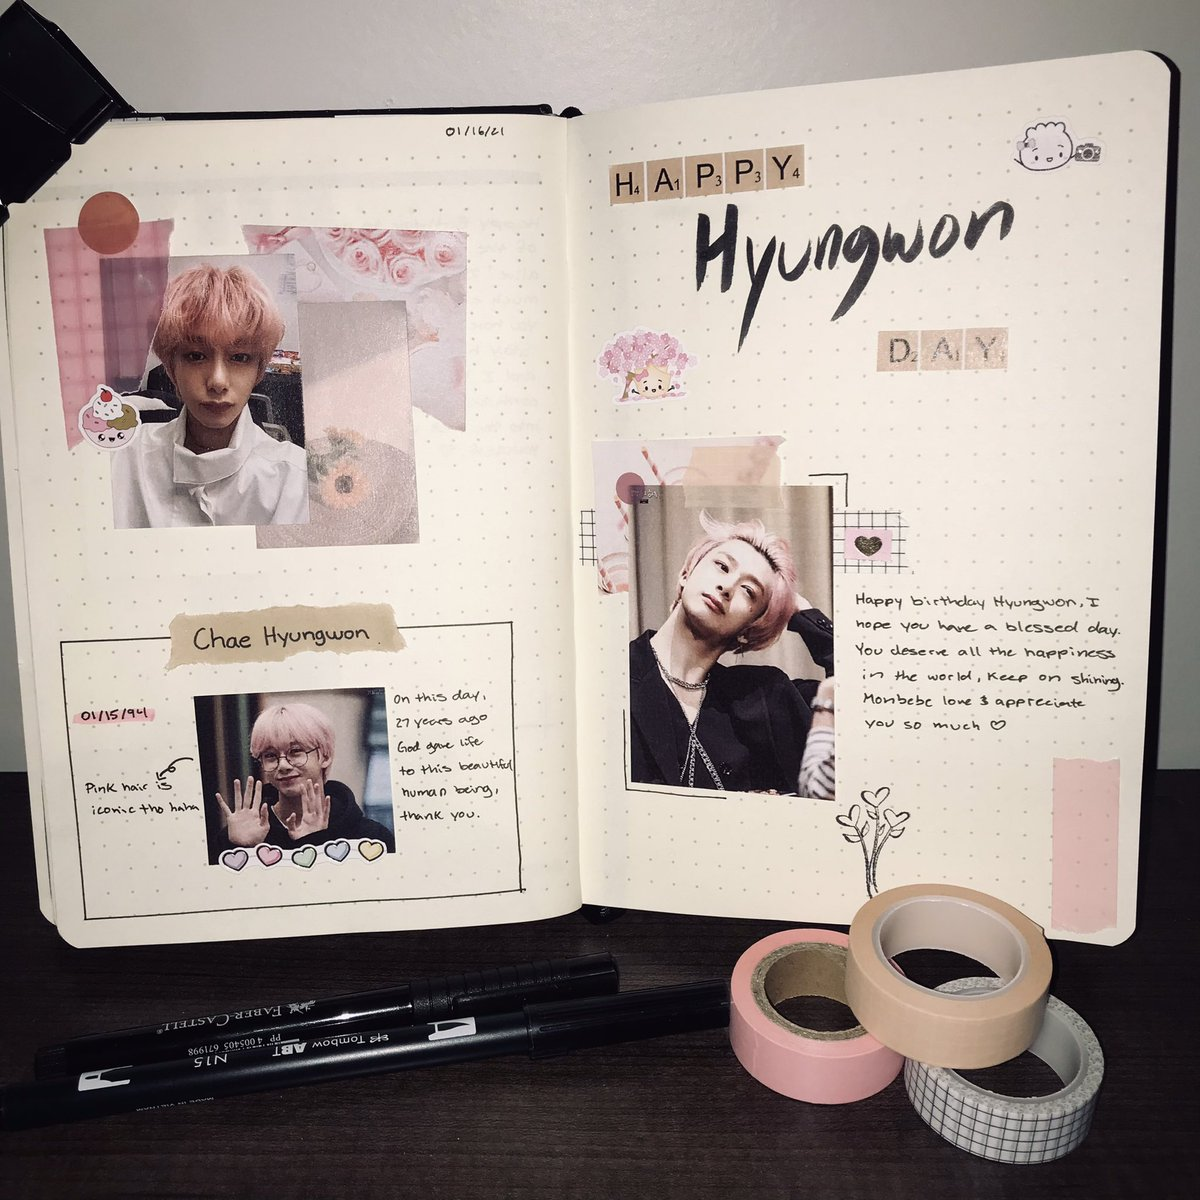 Happy (late) birthday bby ❤️🤍🤍@OfficialMonstaX #HBDtoHYUNGWON #HYUNGWON #HYUNGWONDAY #HAPPYHYUNGWONDAY